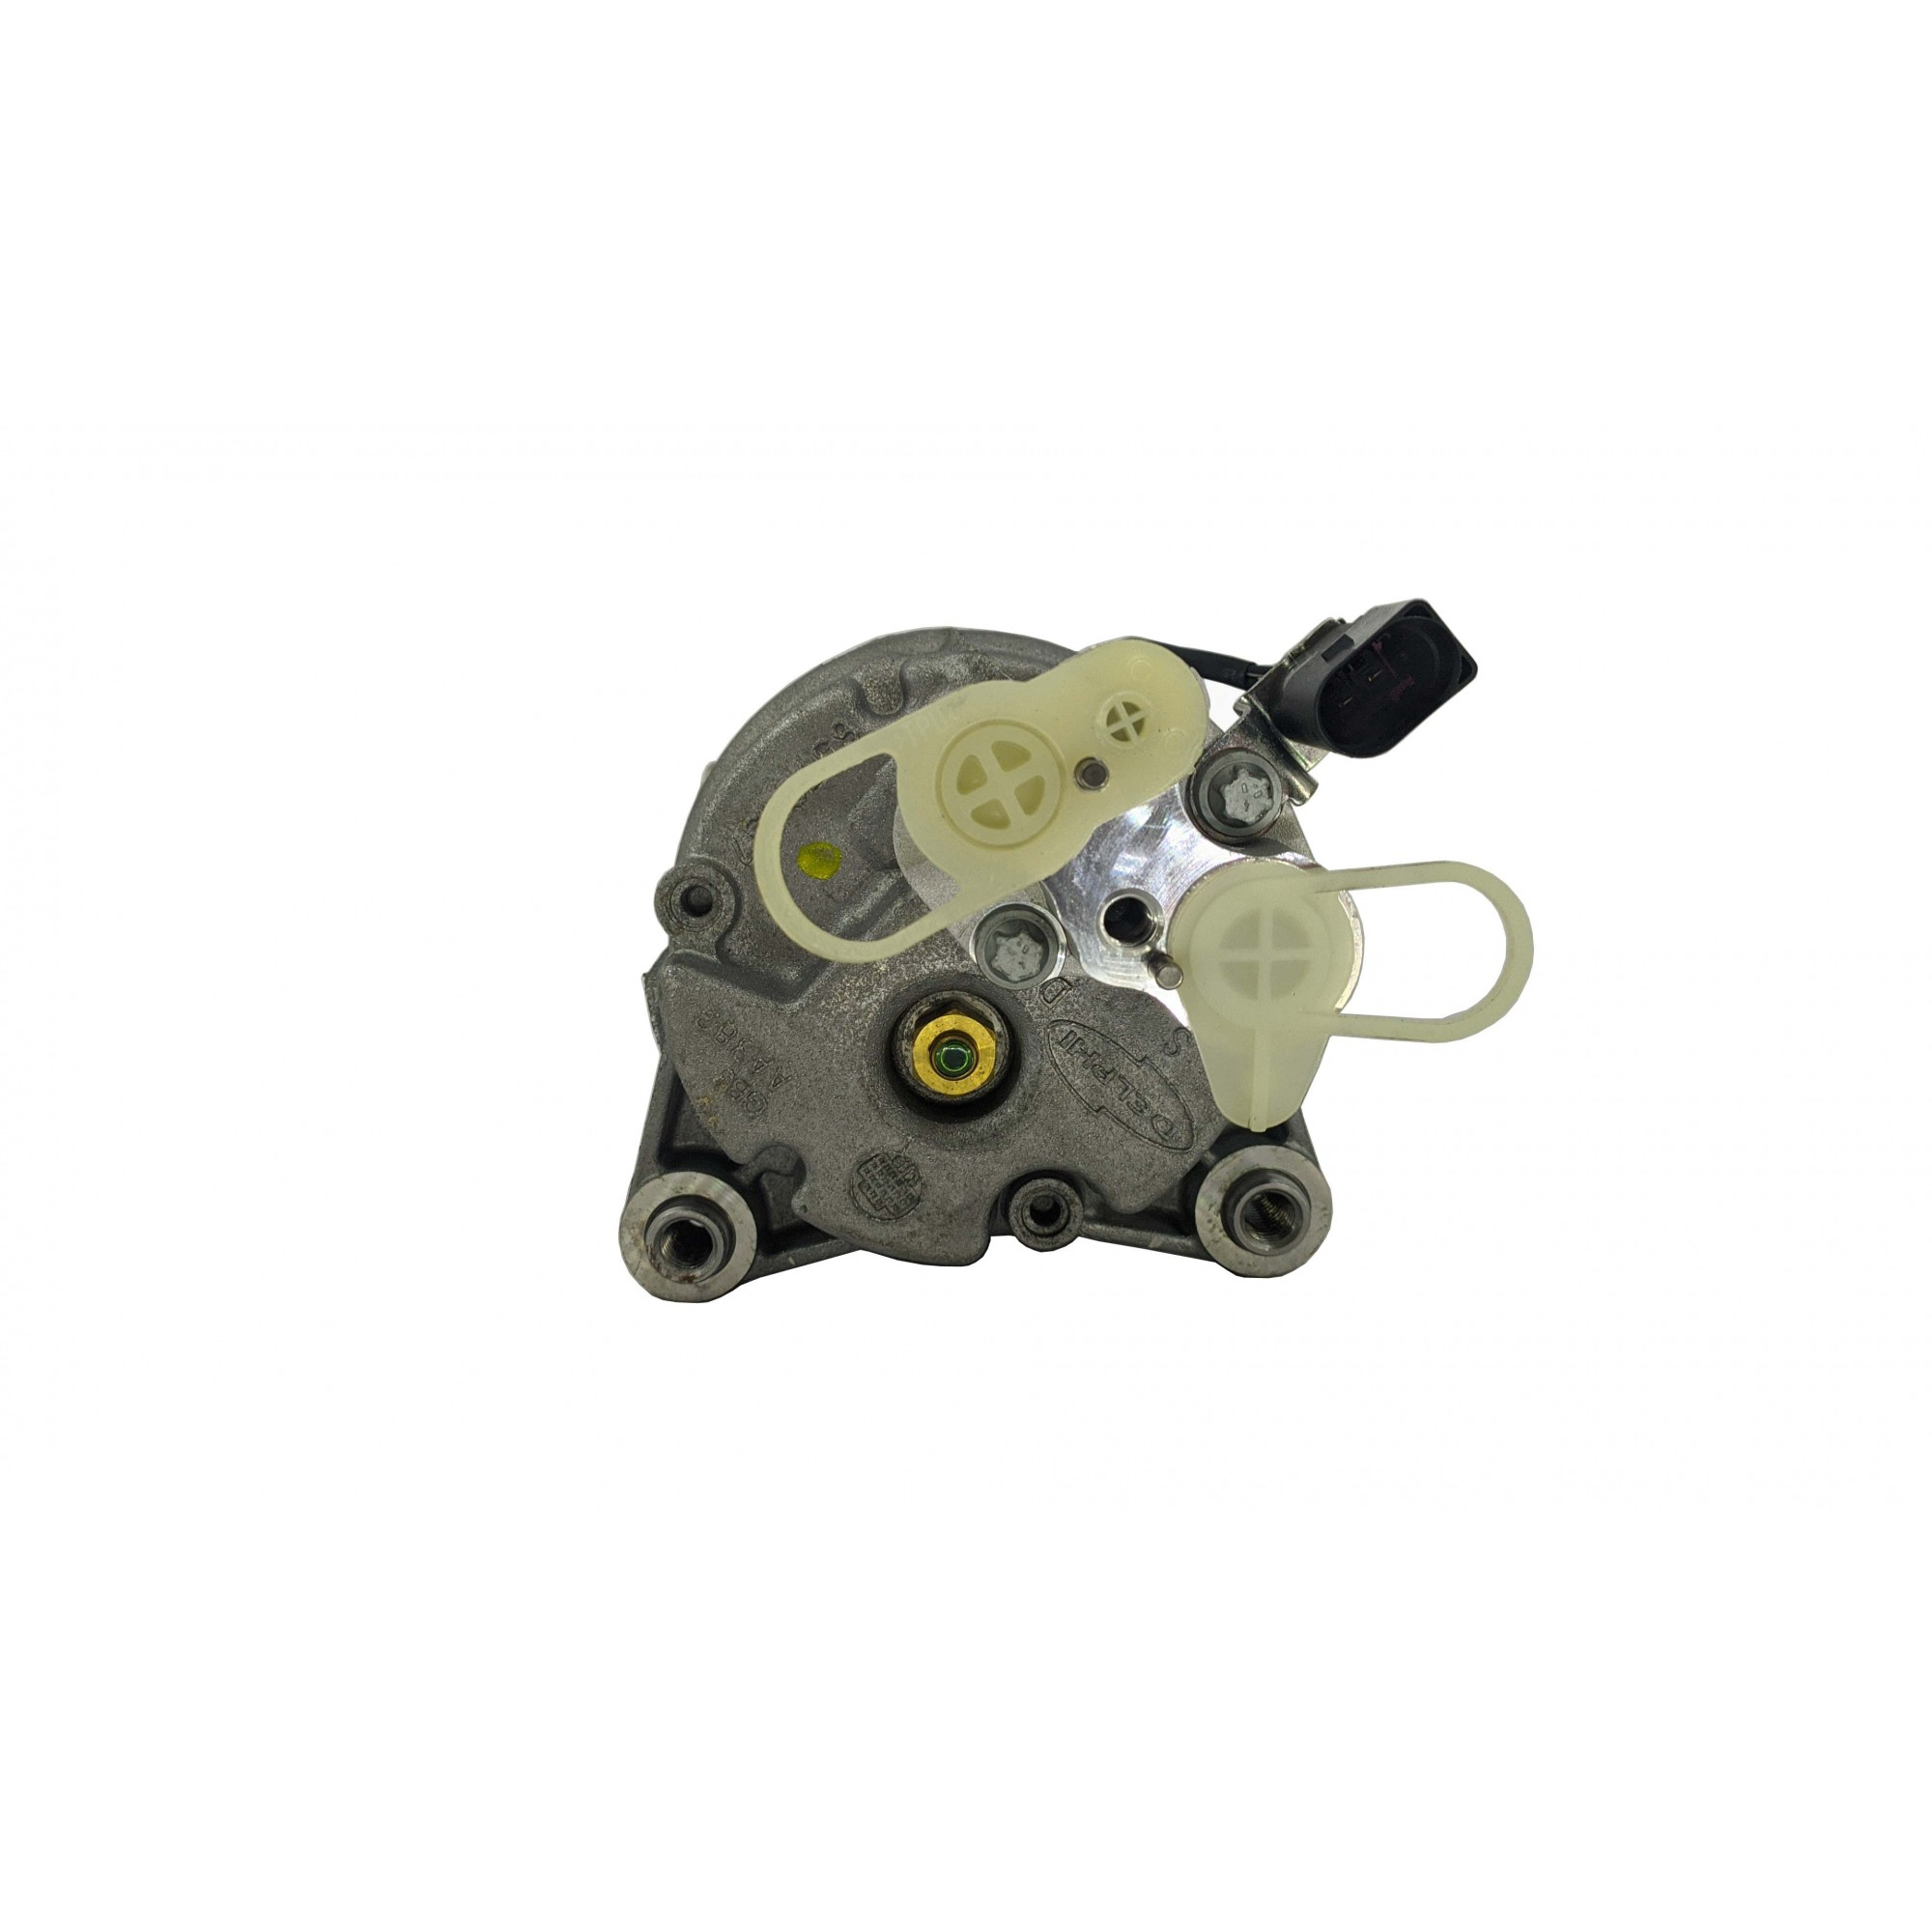 Compressor  Golf / Bora / New Beatle / Audi A3 1.6 1.8 - MAHLE Original